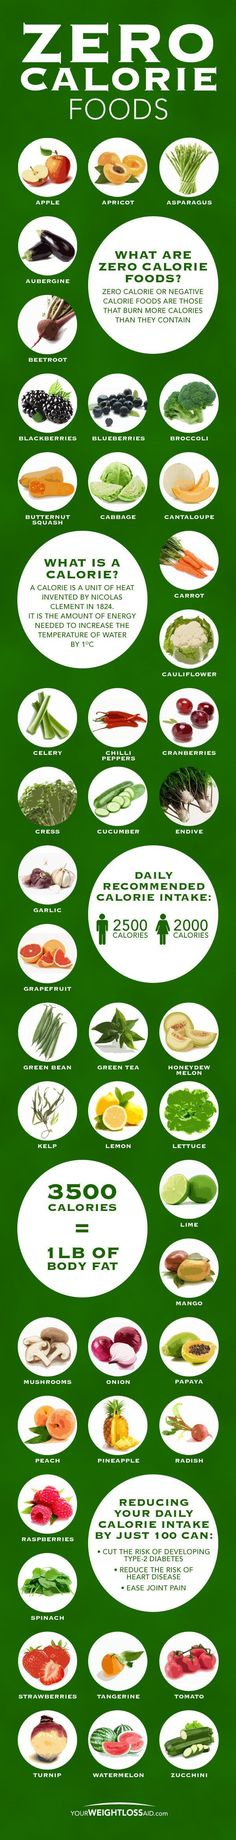 Zero Calorie Foods. (Pic) & 4 High Protein Breakfasts all Under 360 Calories (Link)